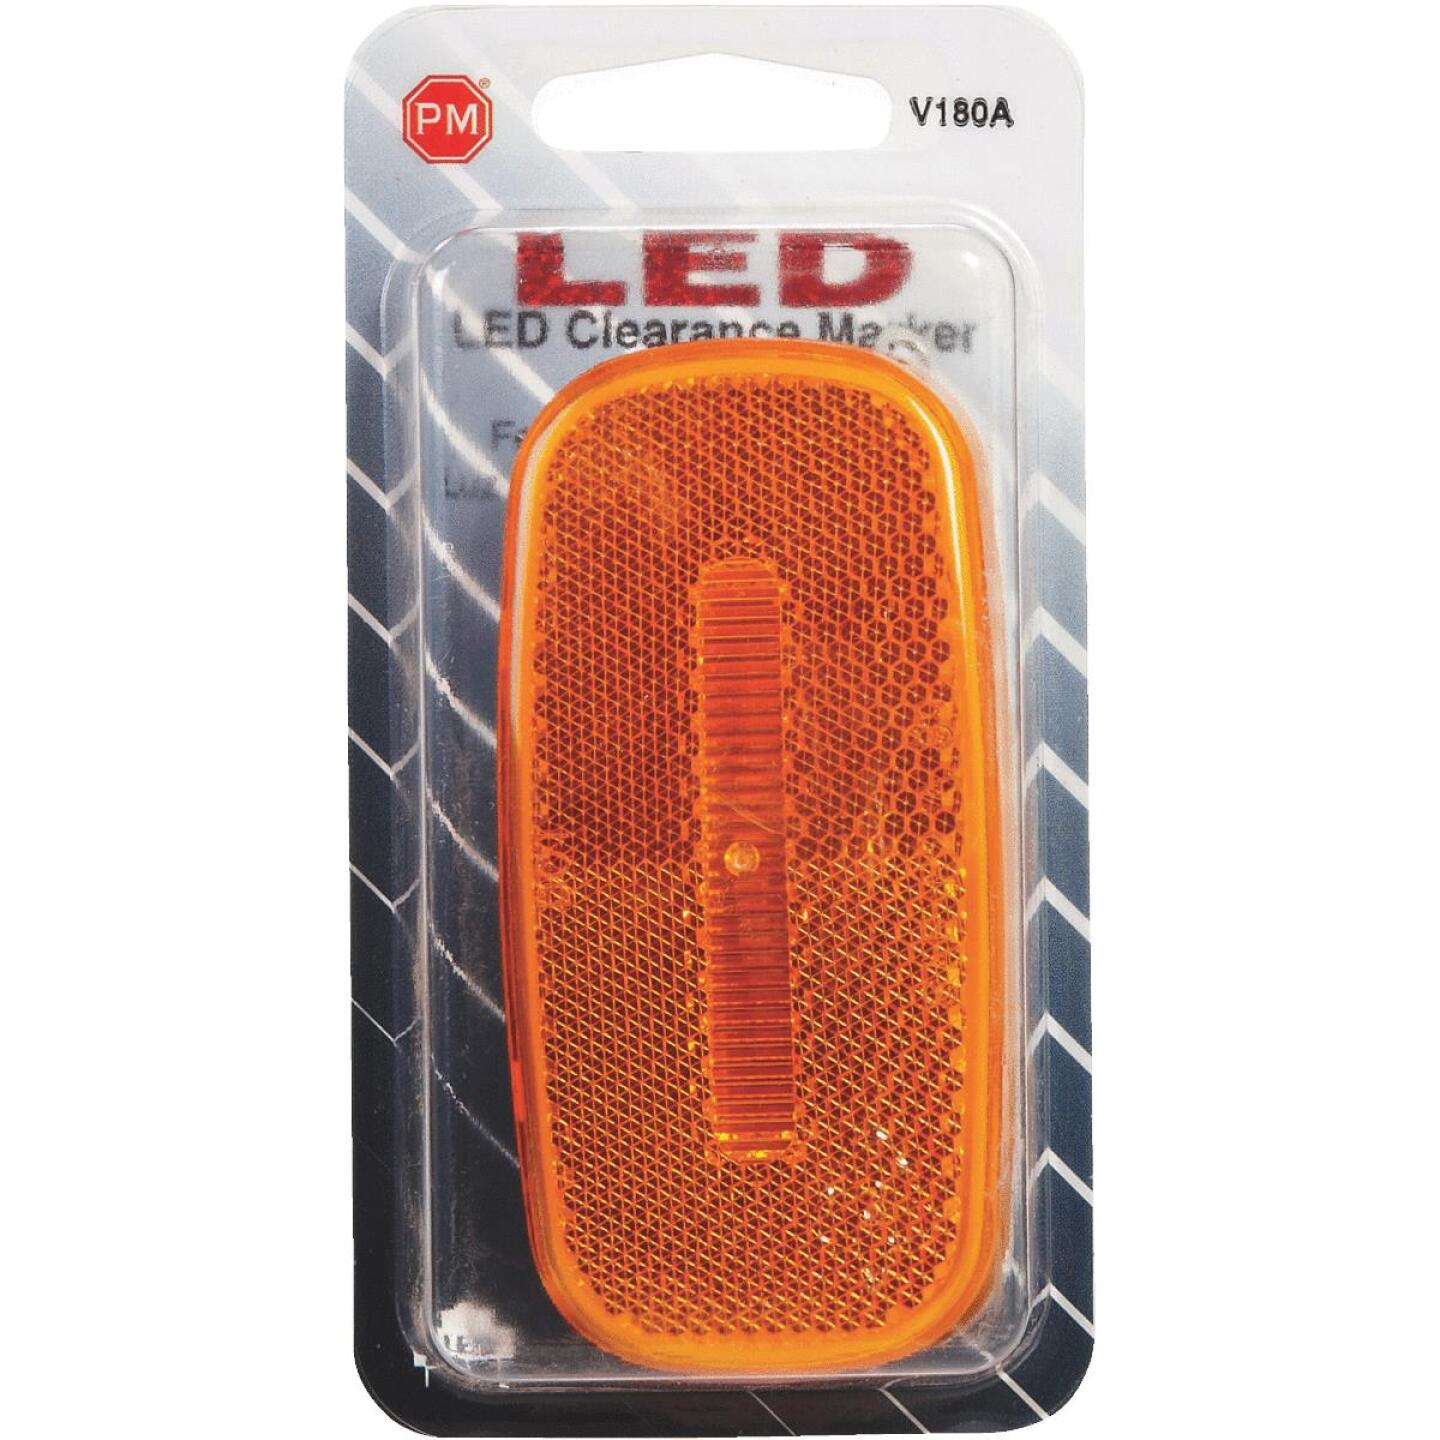 Peterson Oval Red Clearance Light Image 2